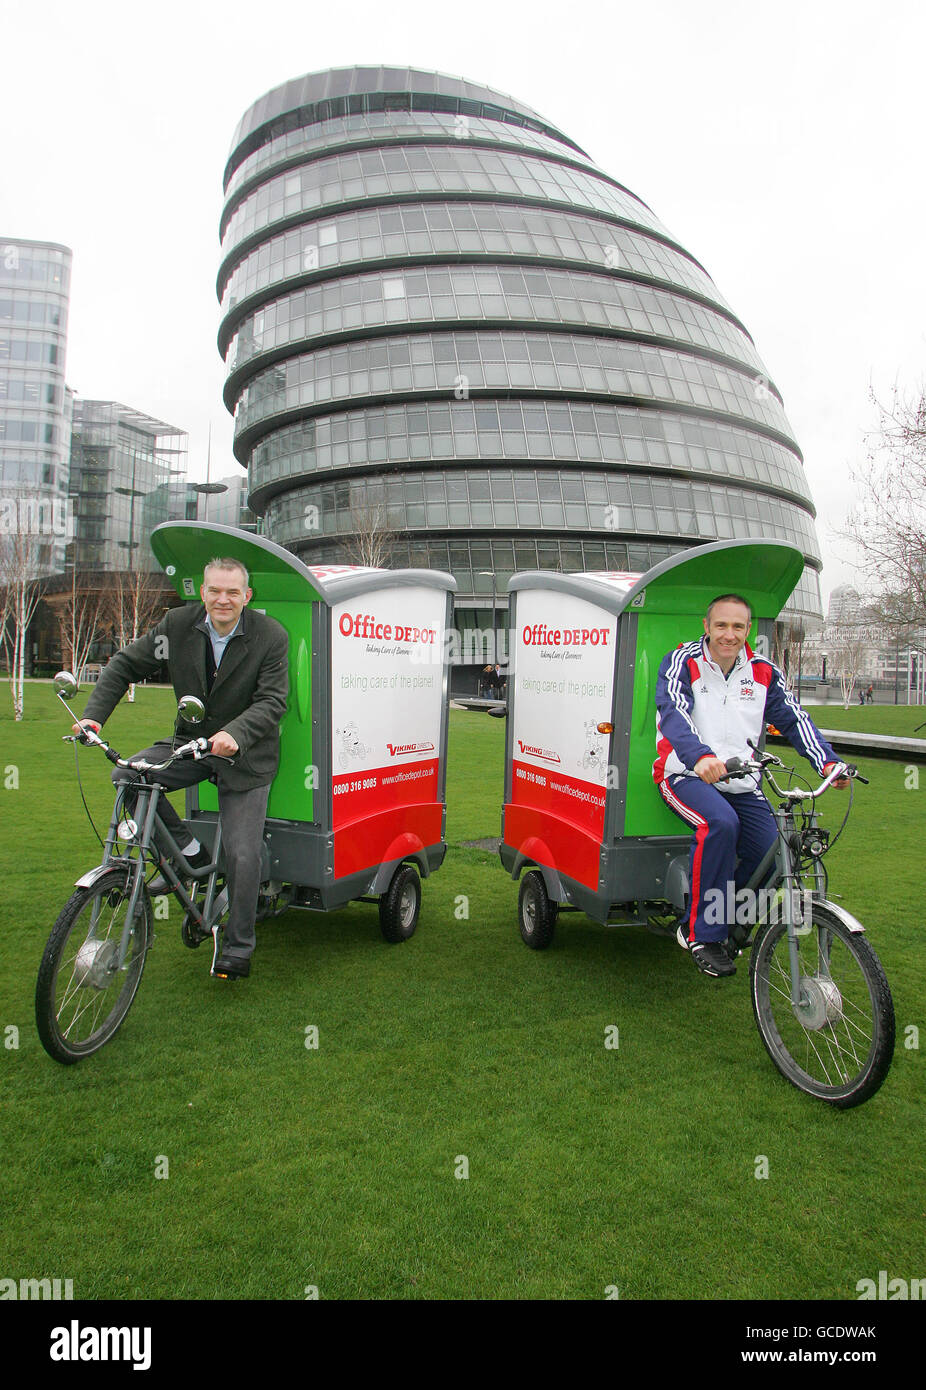 Cargo cycles launch - Stock Image